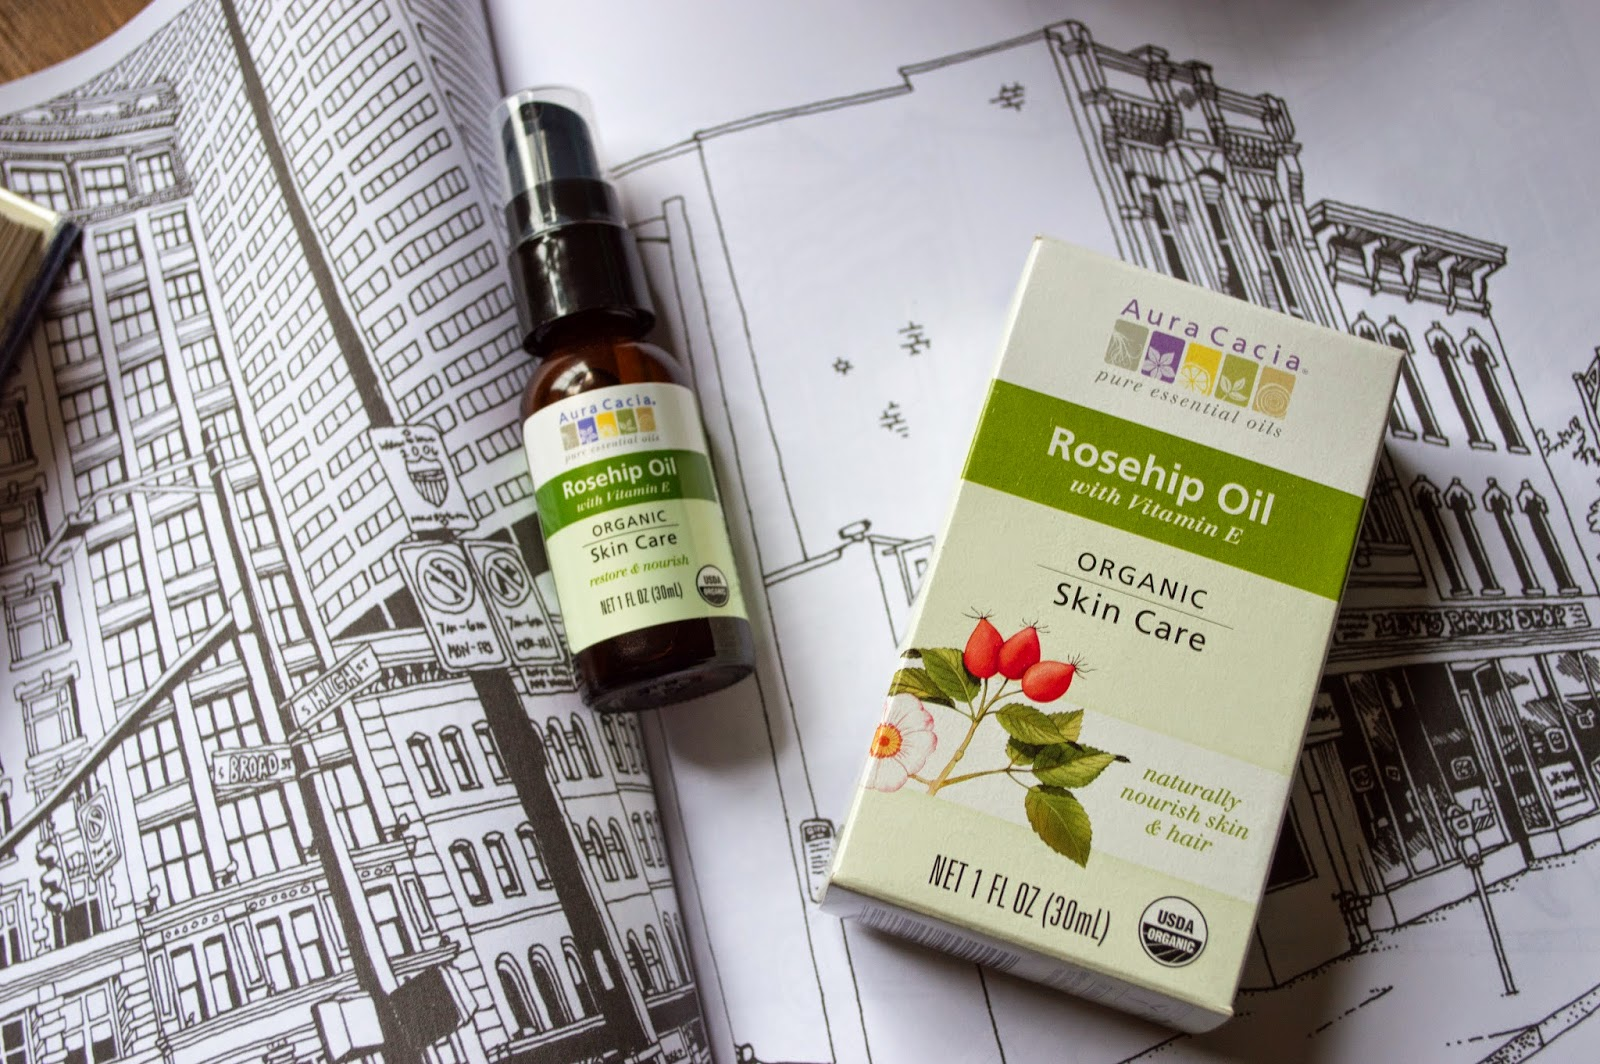 GIVEAWAY: AURA CACIA ROSEHIP OIL